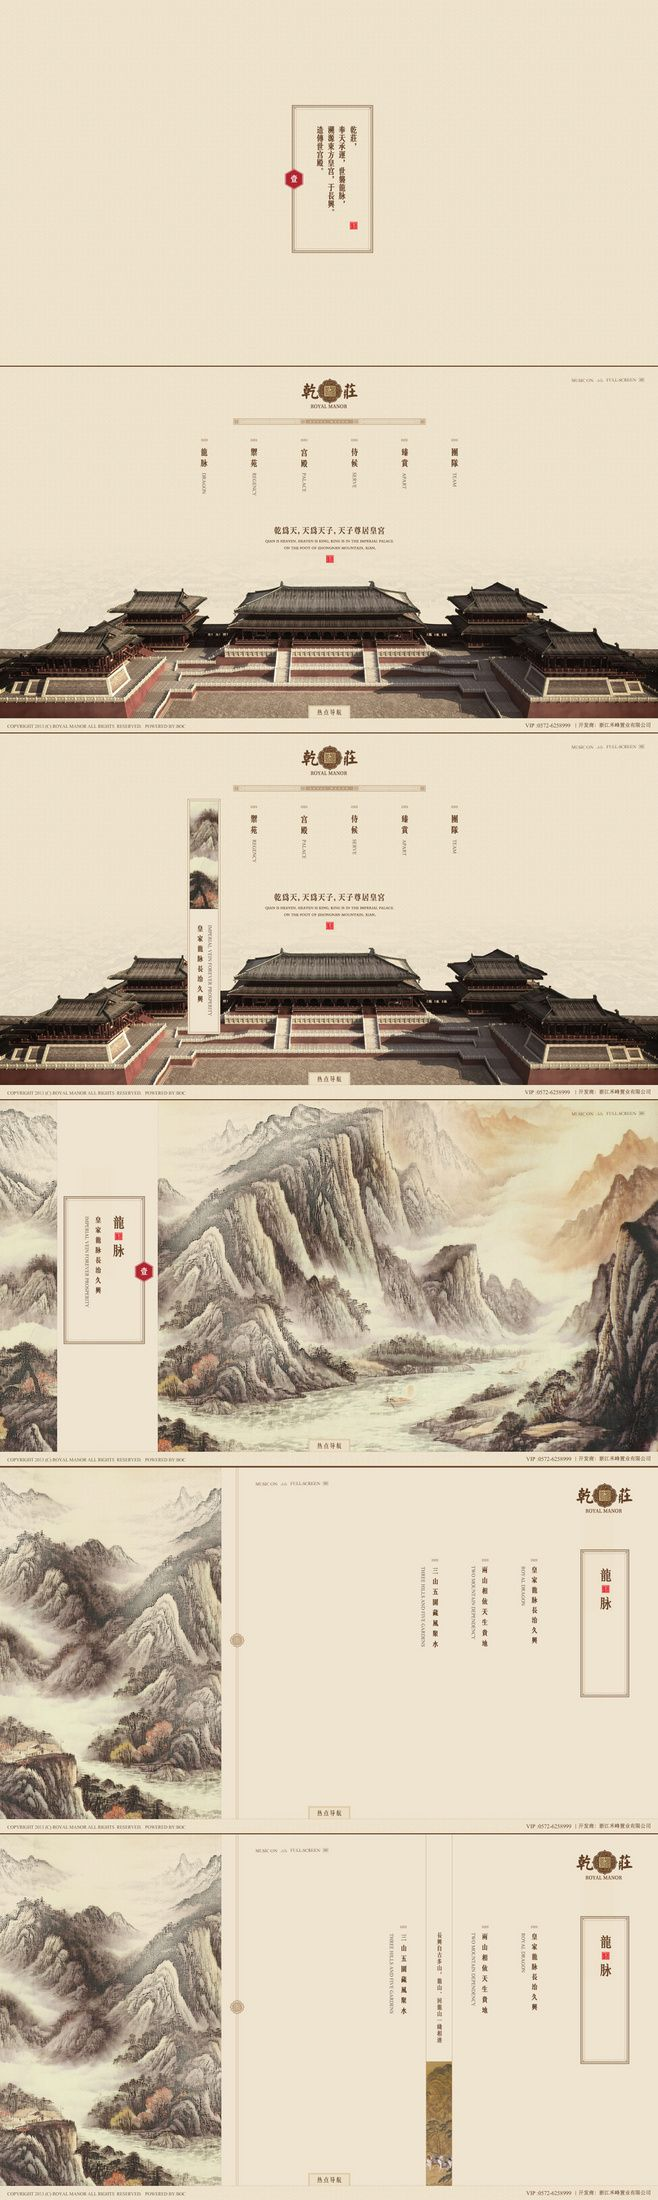 best 装饰画 images on pinterest